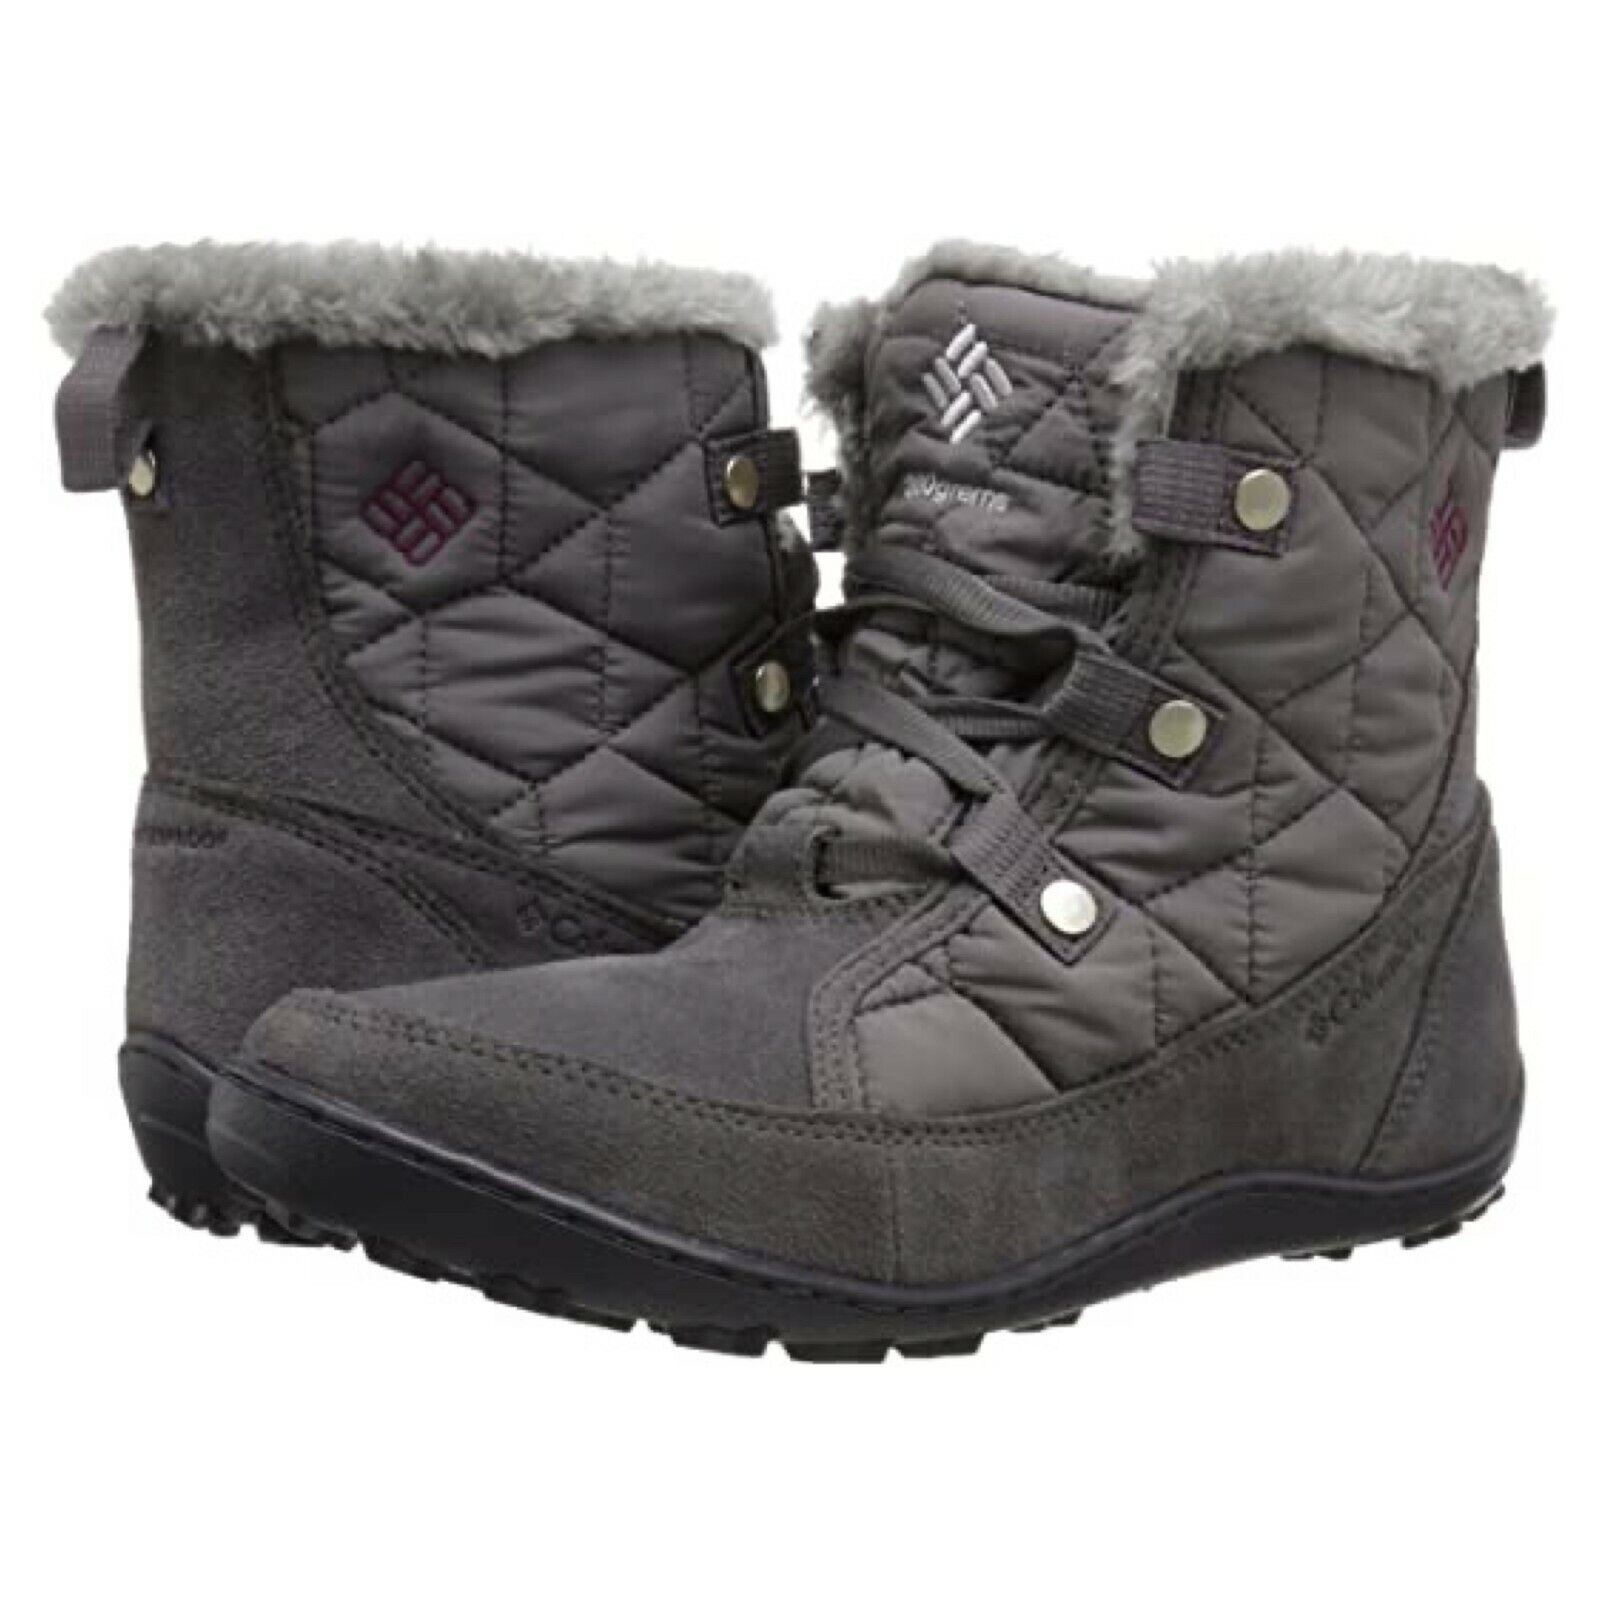 COLUMBIA MINX SHORTY OMNI-HEAT BOOTS WOMEN'S ANKLE WATERPROO